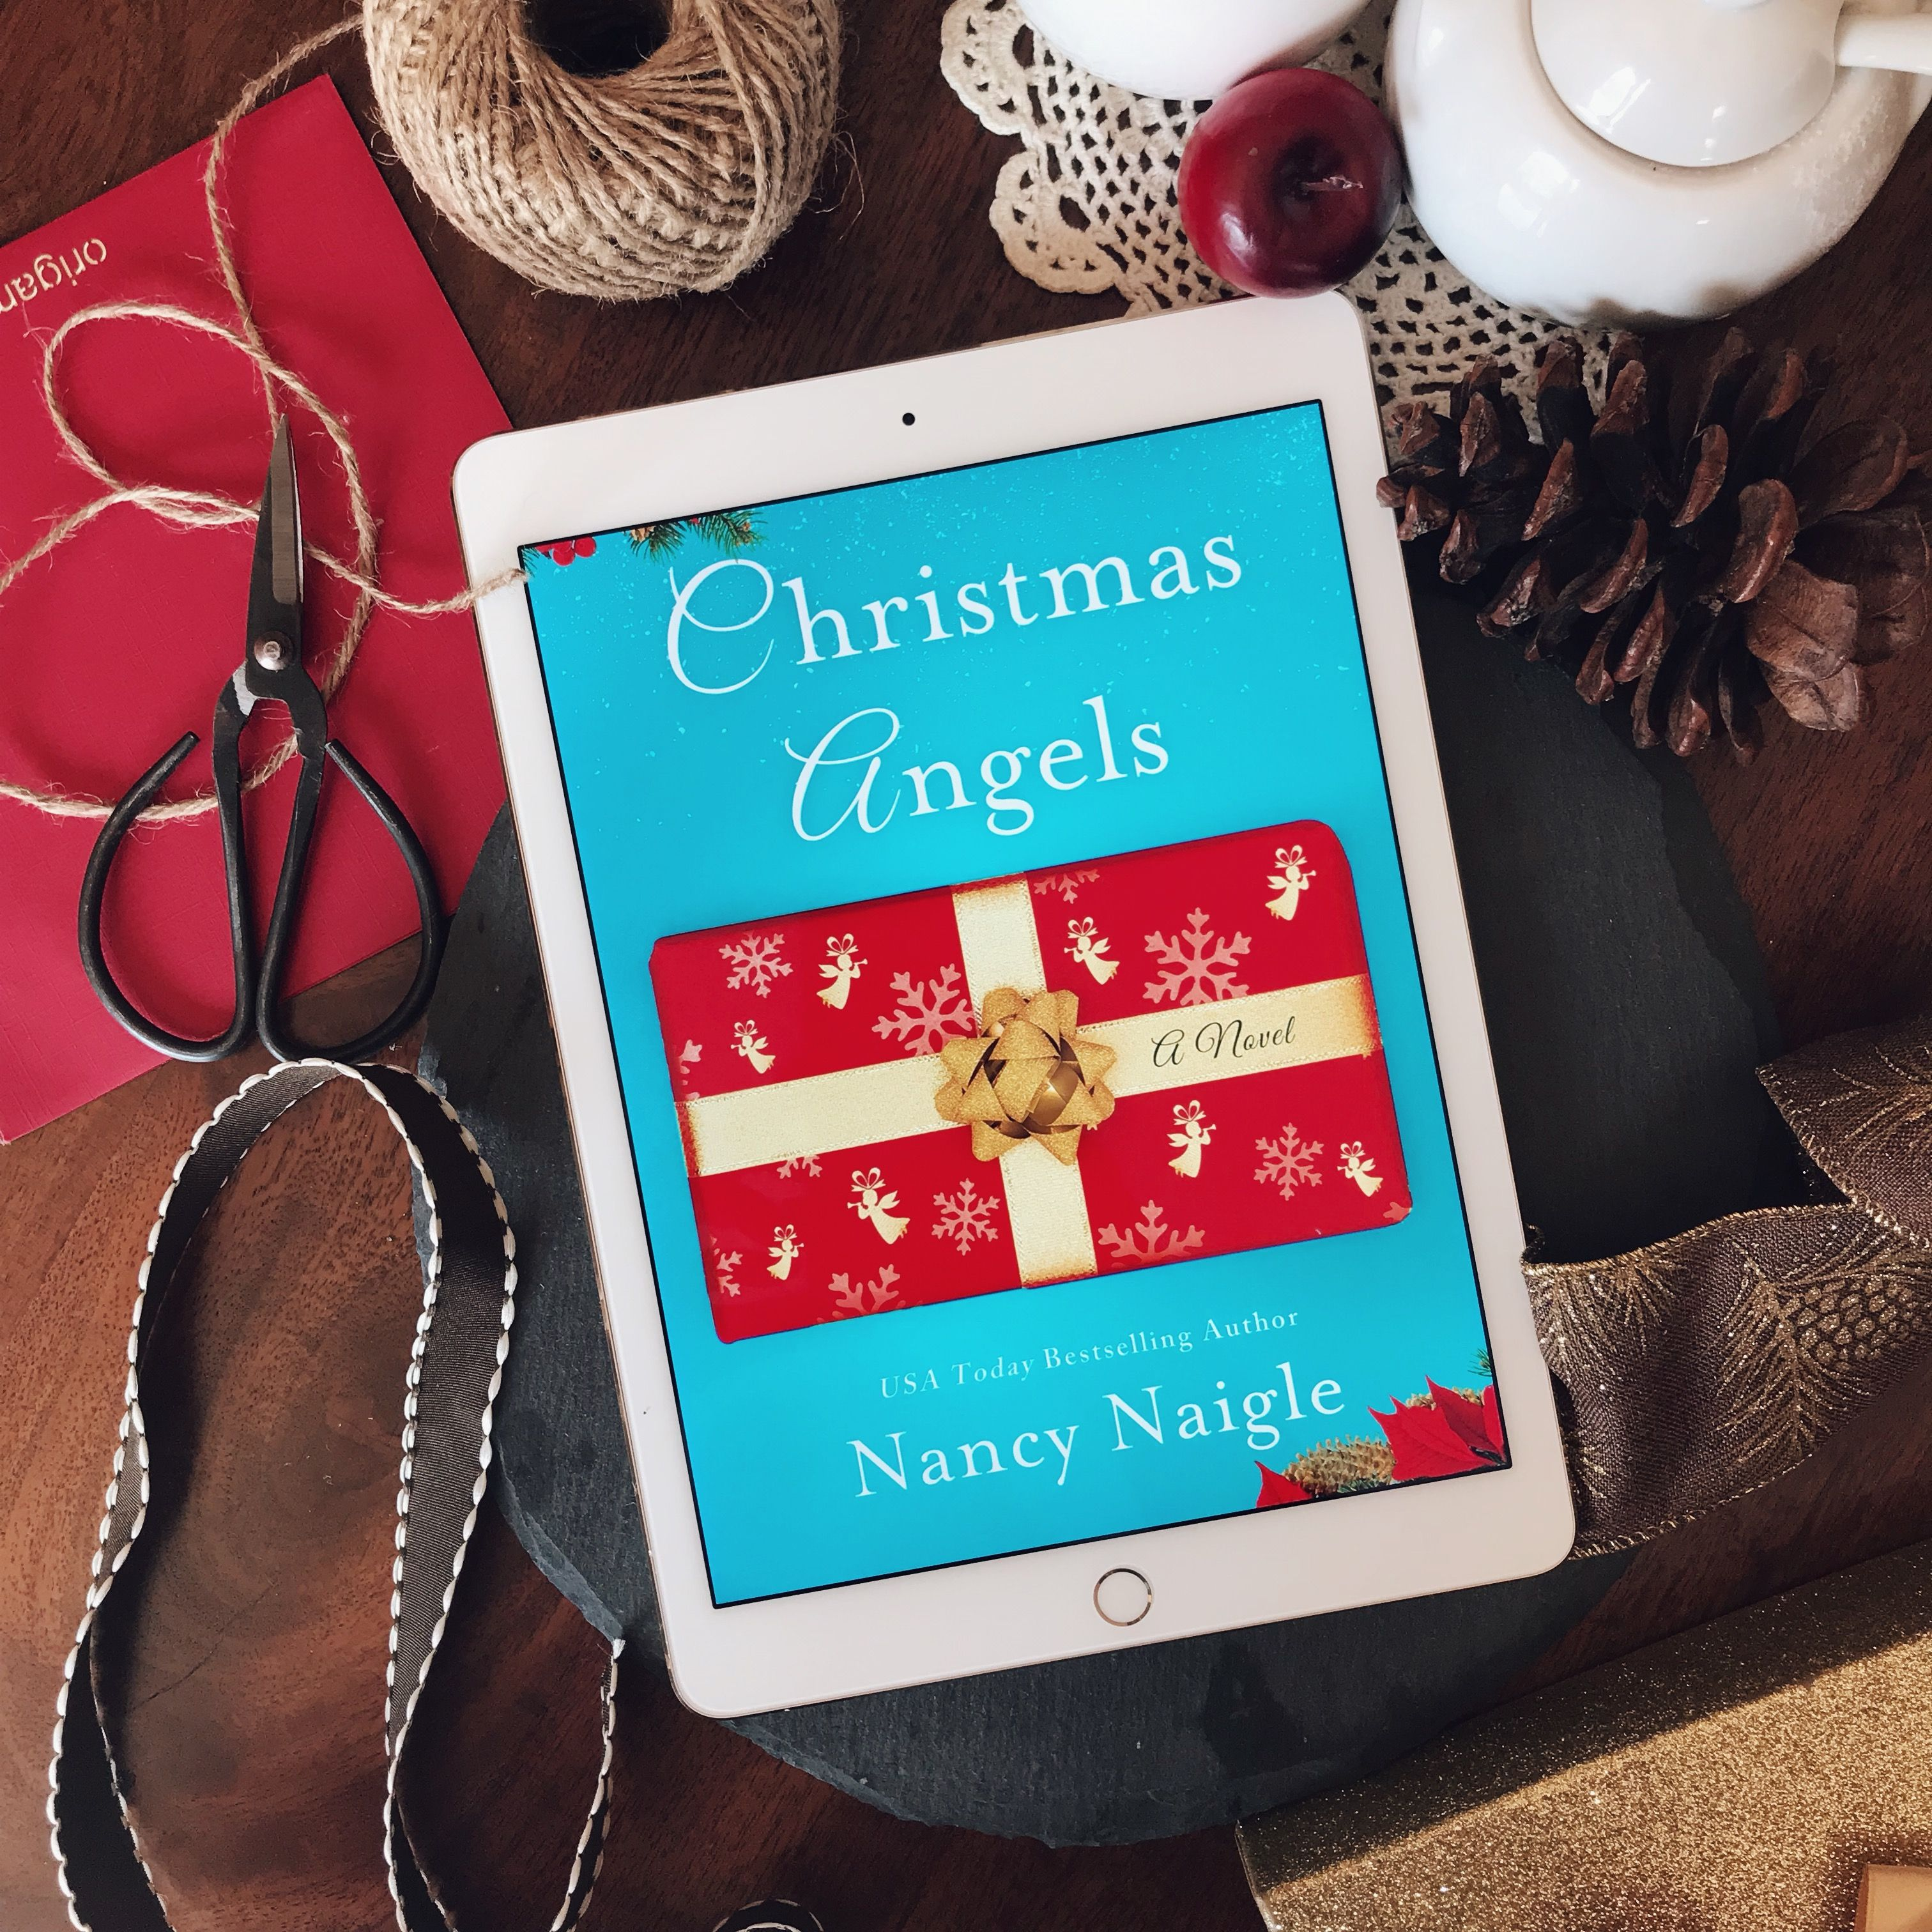 Christmas angels by nancy naigle book review christmas